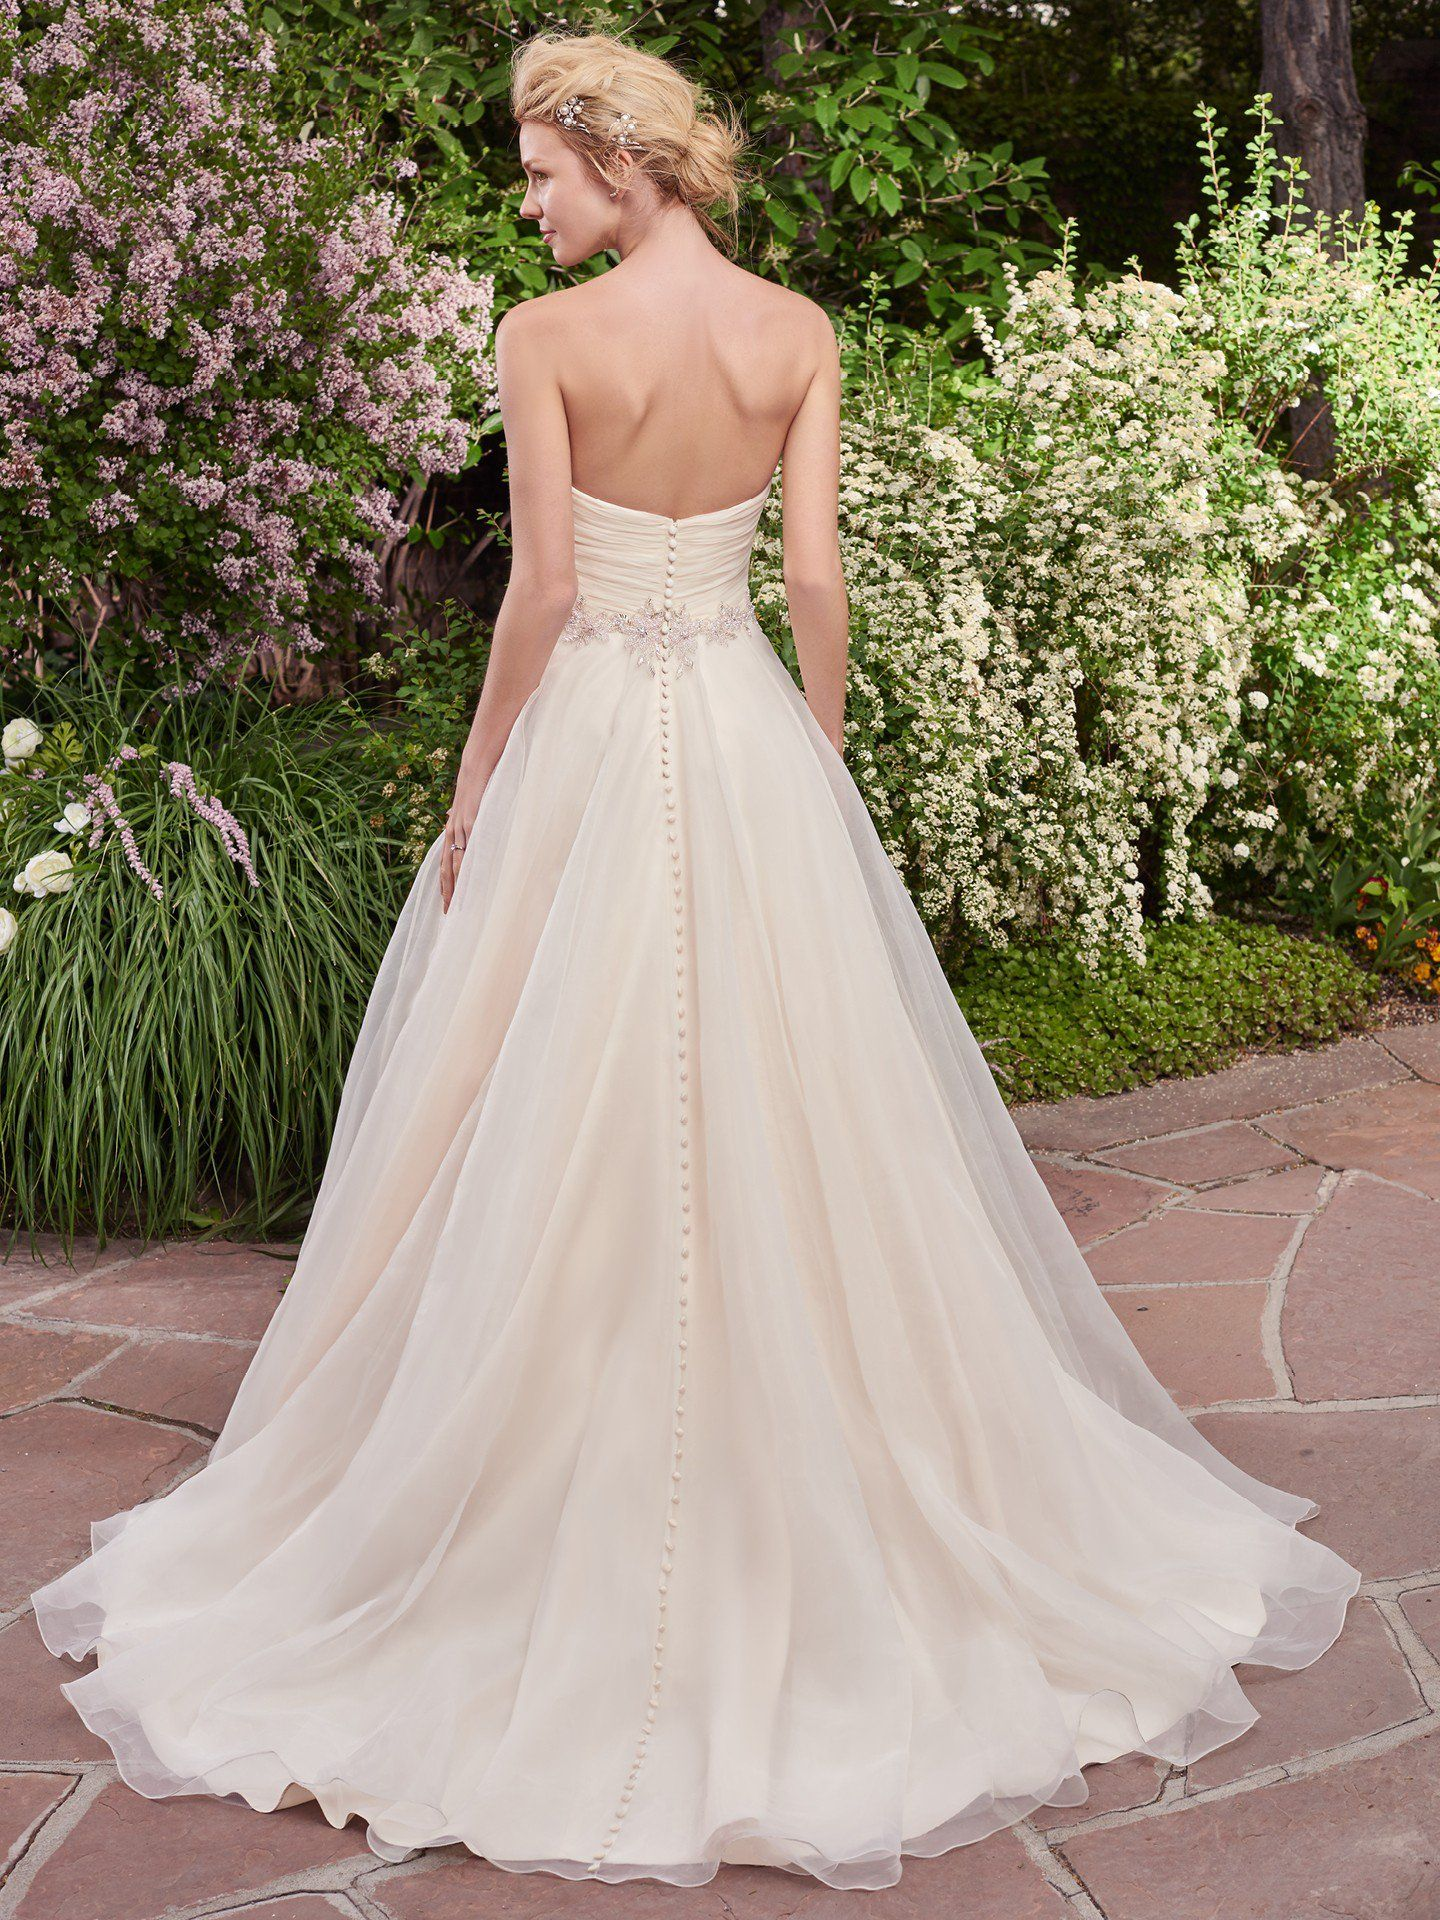 Maggie Sottero Wedding Dresses   Bliss, Bridal gowns and Gowns